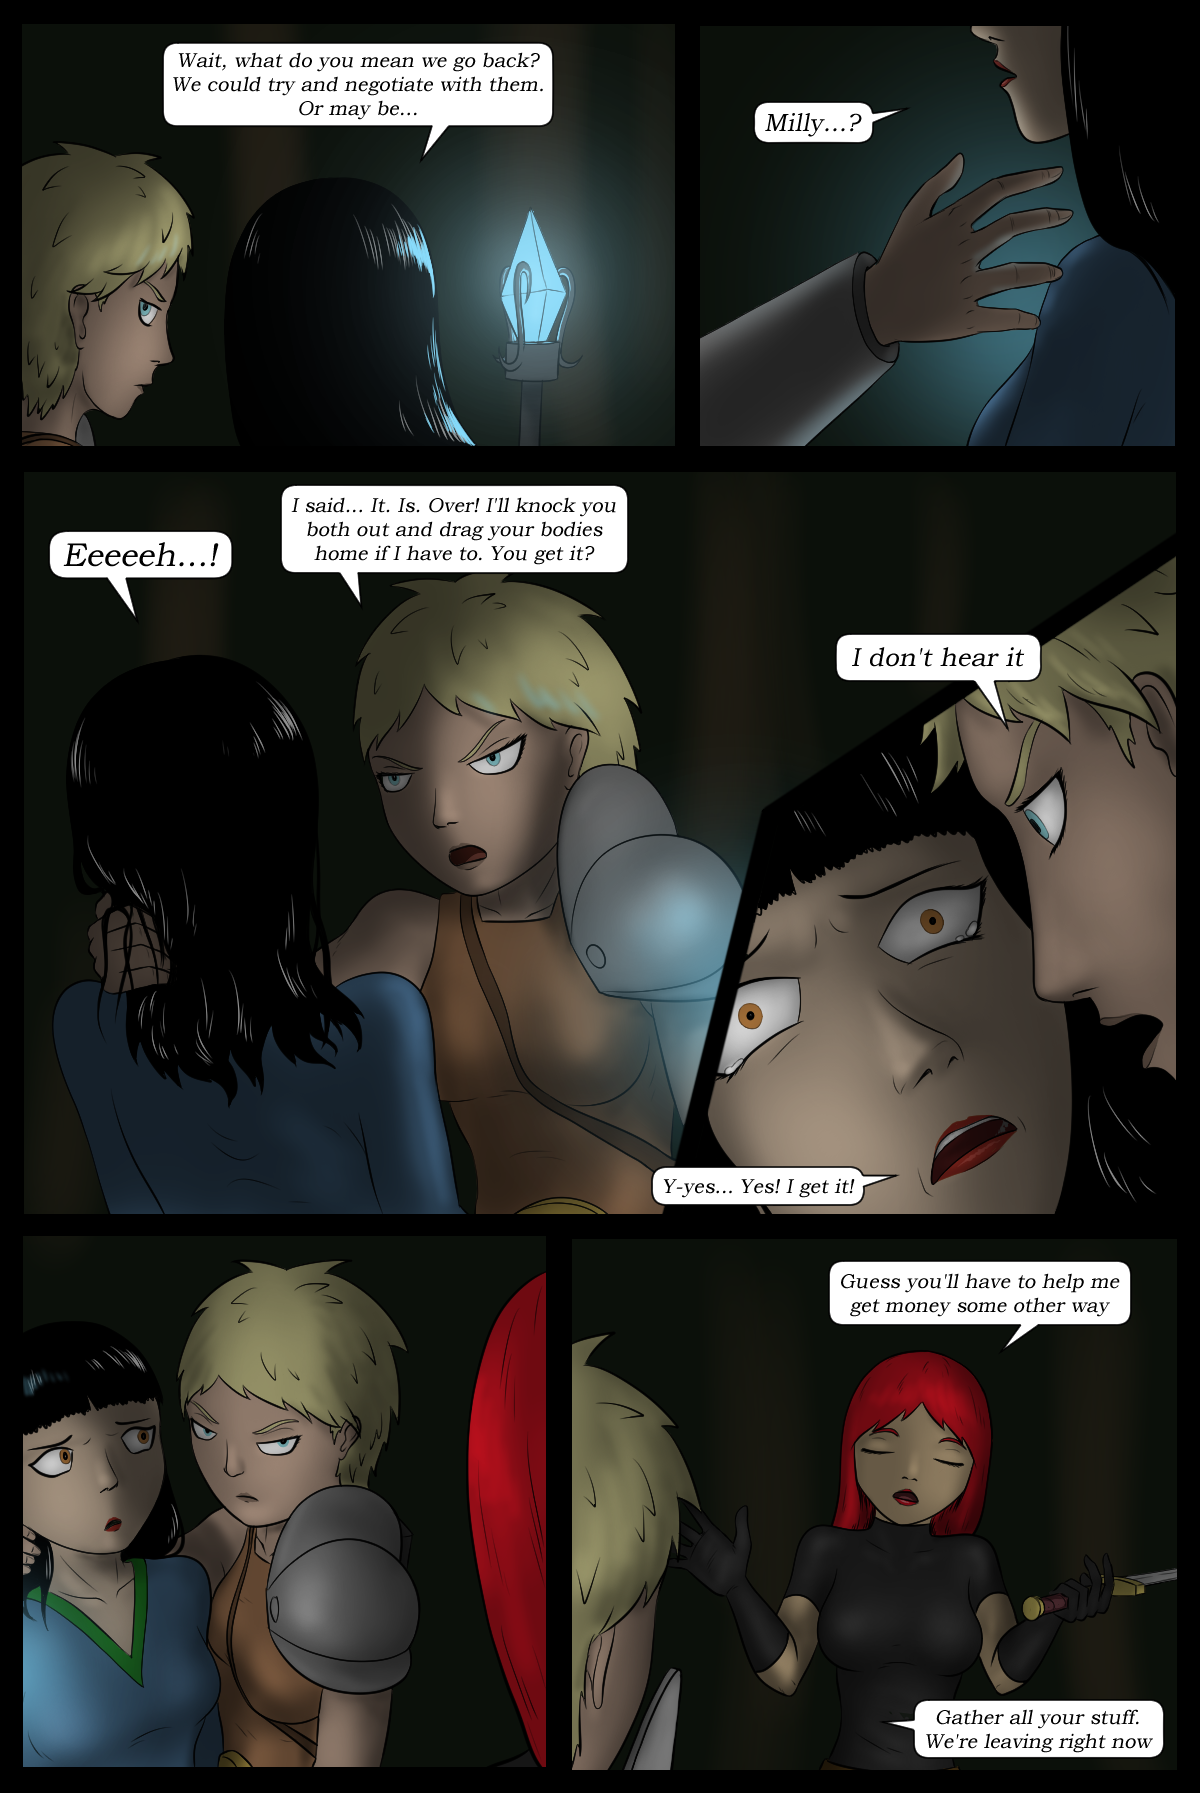 Page 57 - No excuses